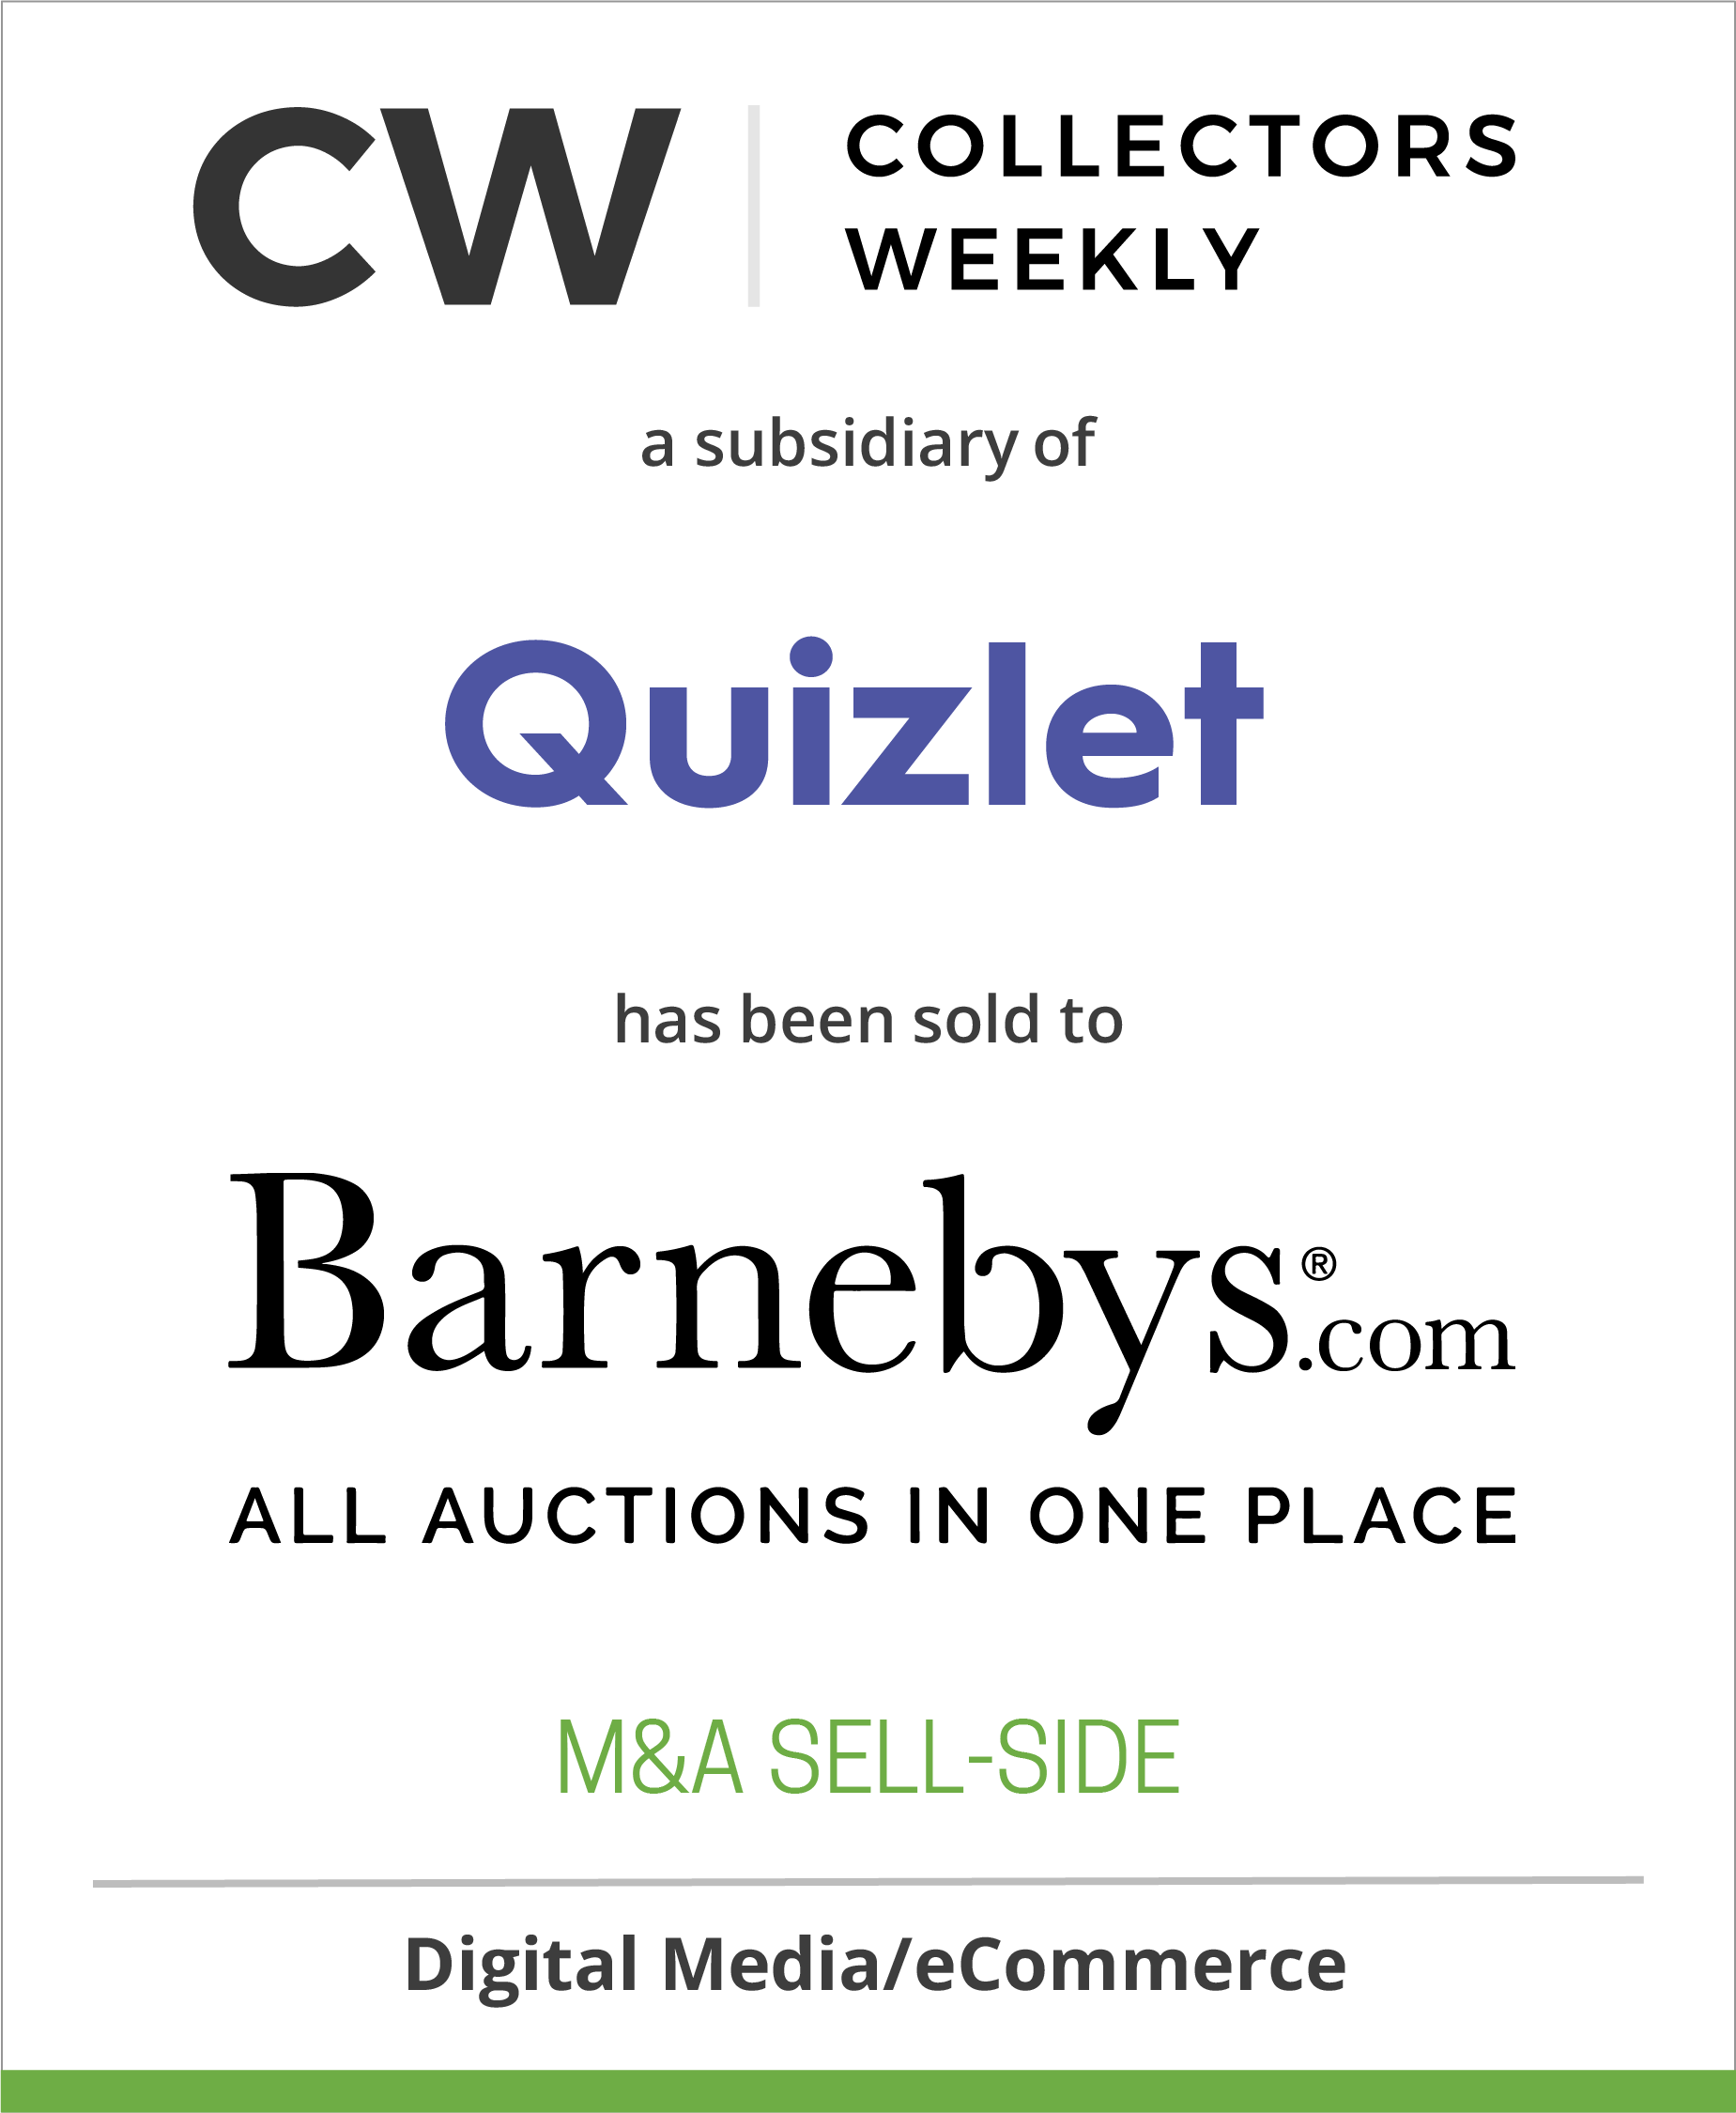 Collectors Weekly has been Acquired by Barnebys